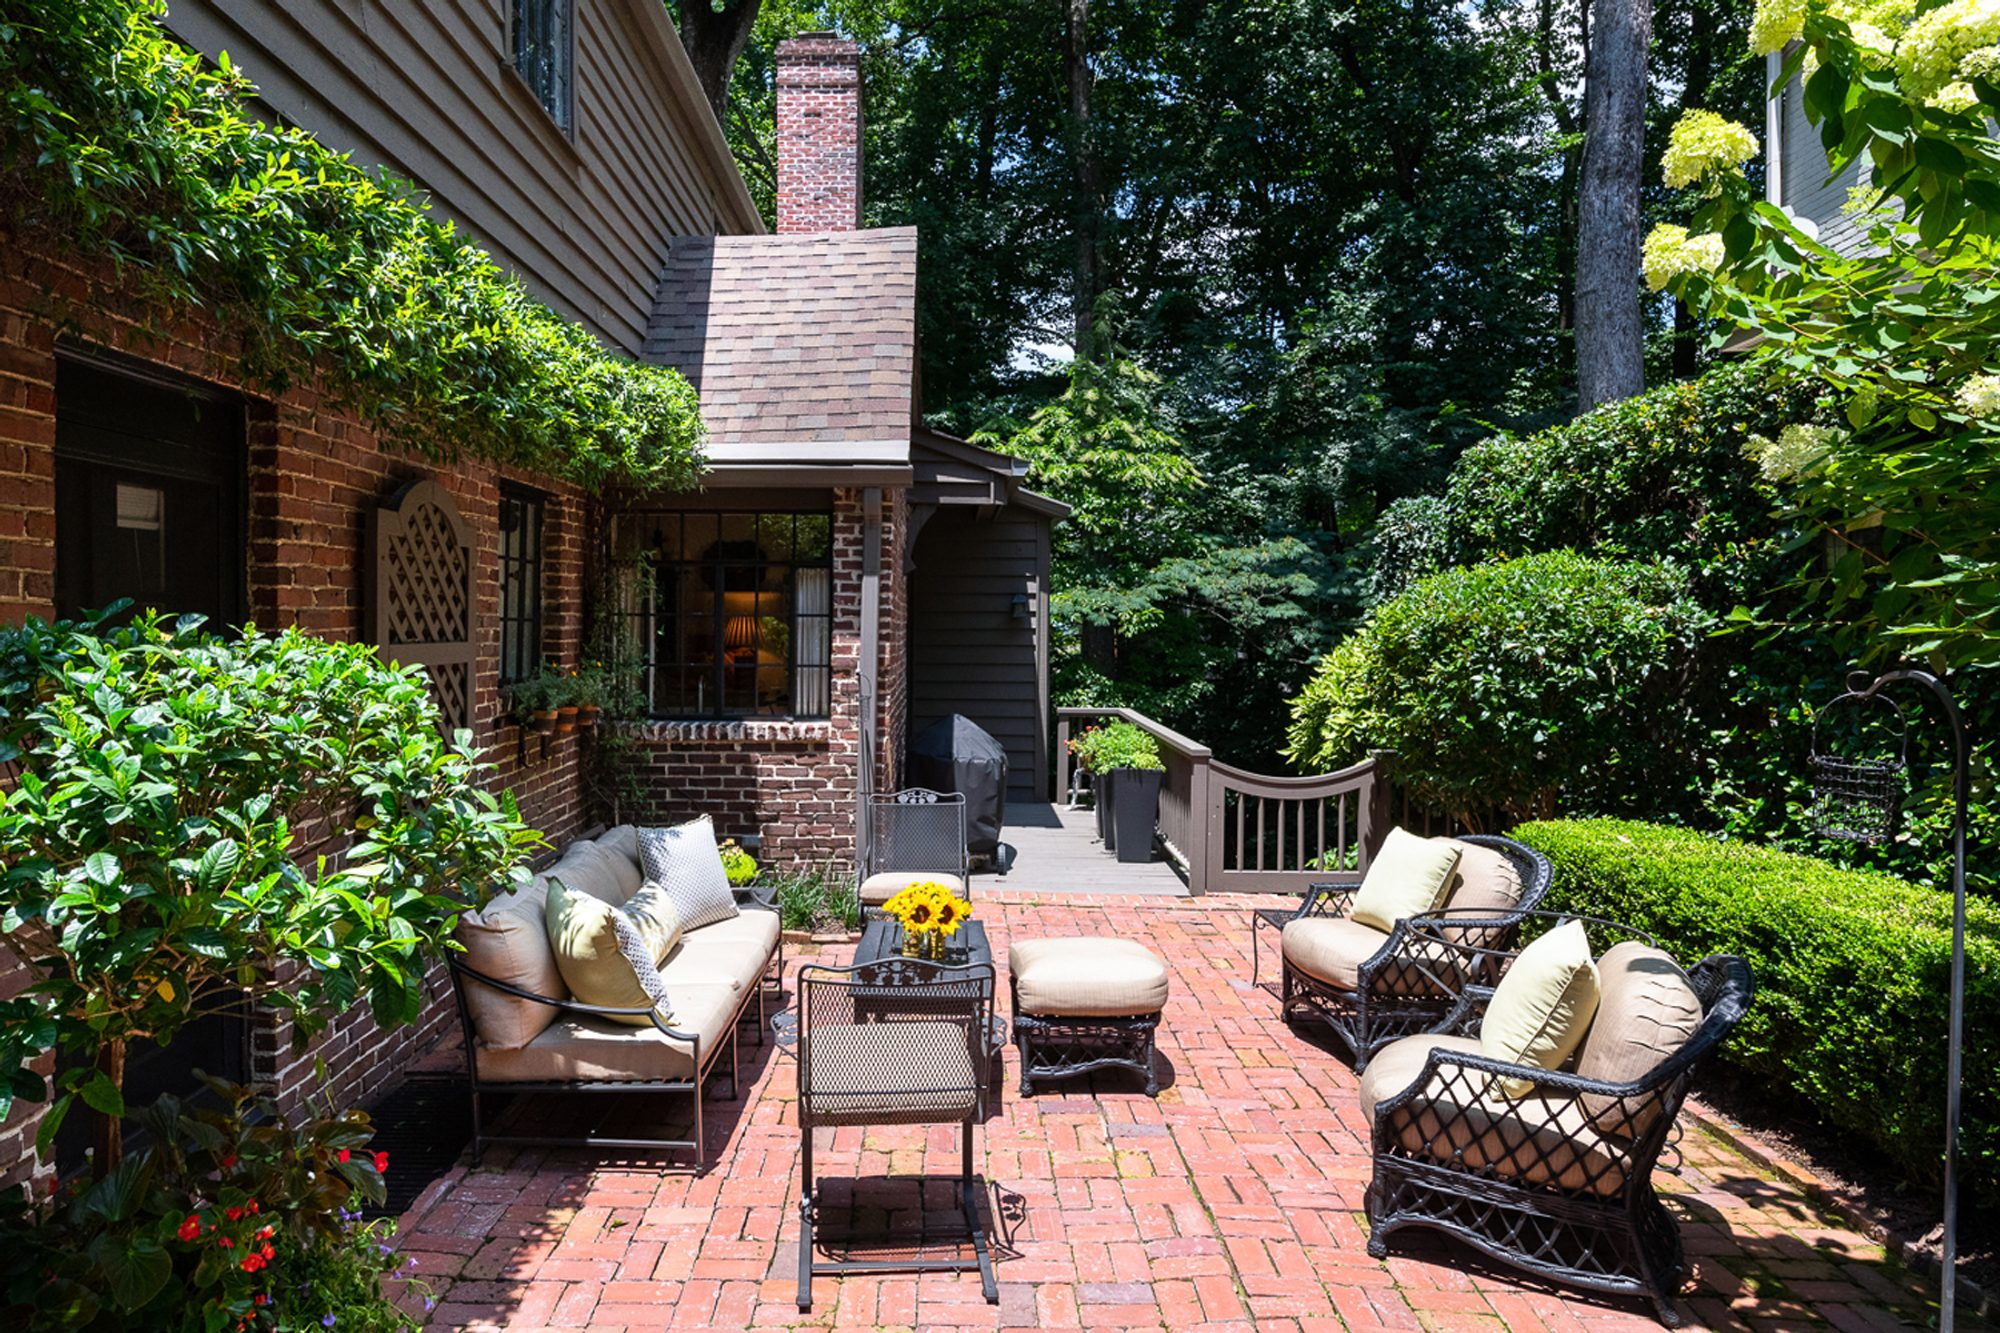 Red Brick Patio Ideas | DIY Paver Designs & Pictues on Red Paver Patio Ideas id=68939